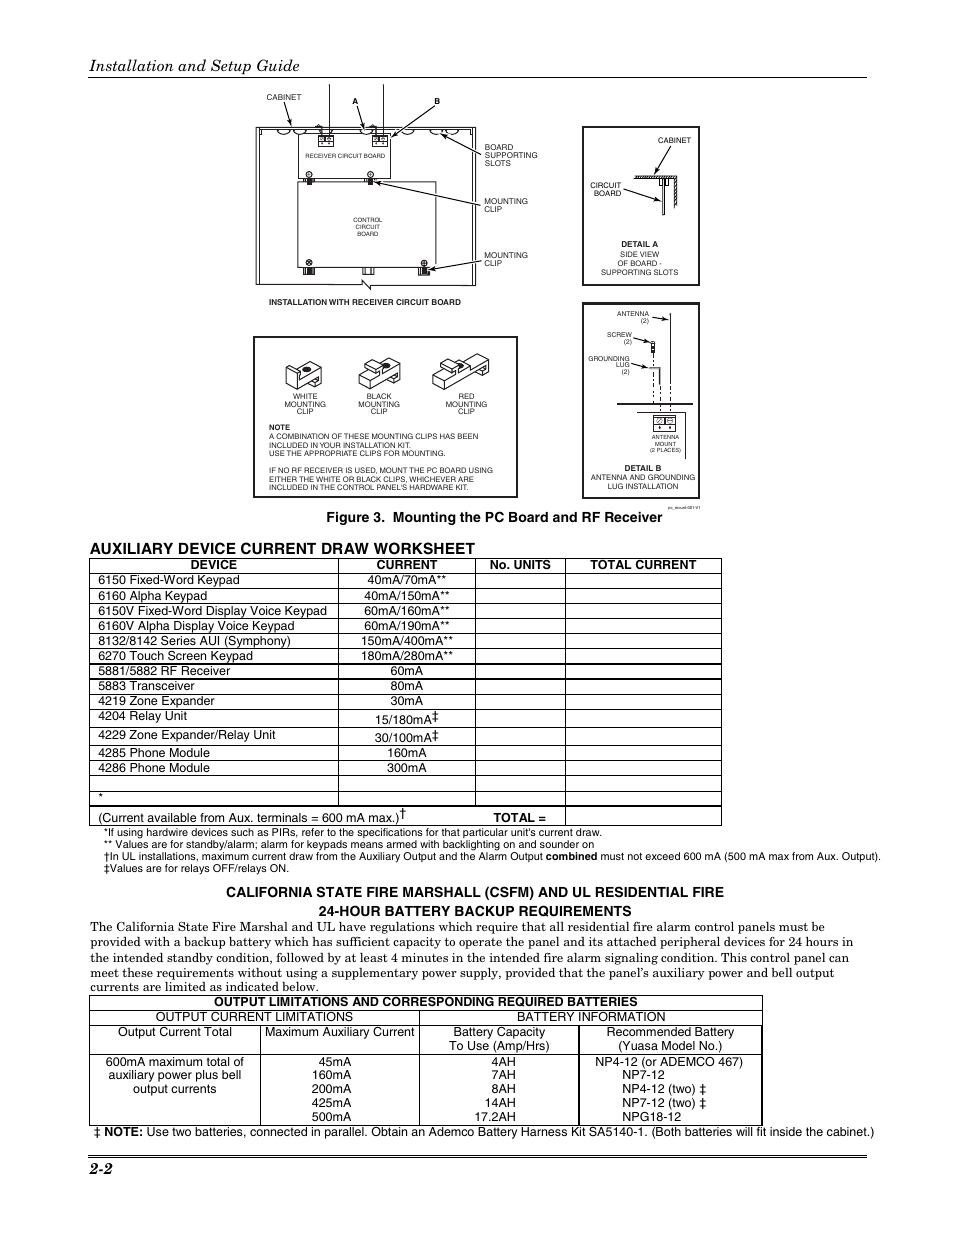 auxiliary device current draw worksheet installation and setup rh manualsdir com ADT Ademco Manual ademco 4229 installation manual